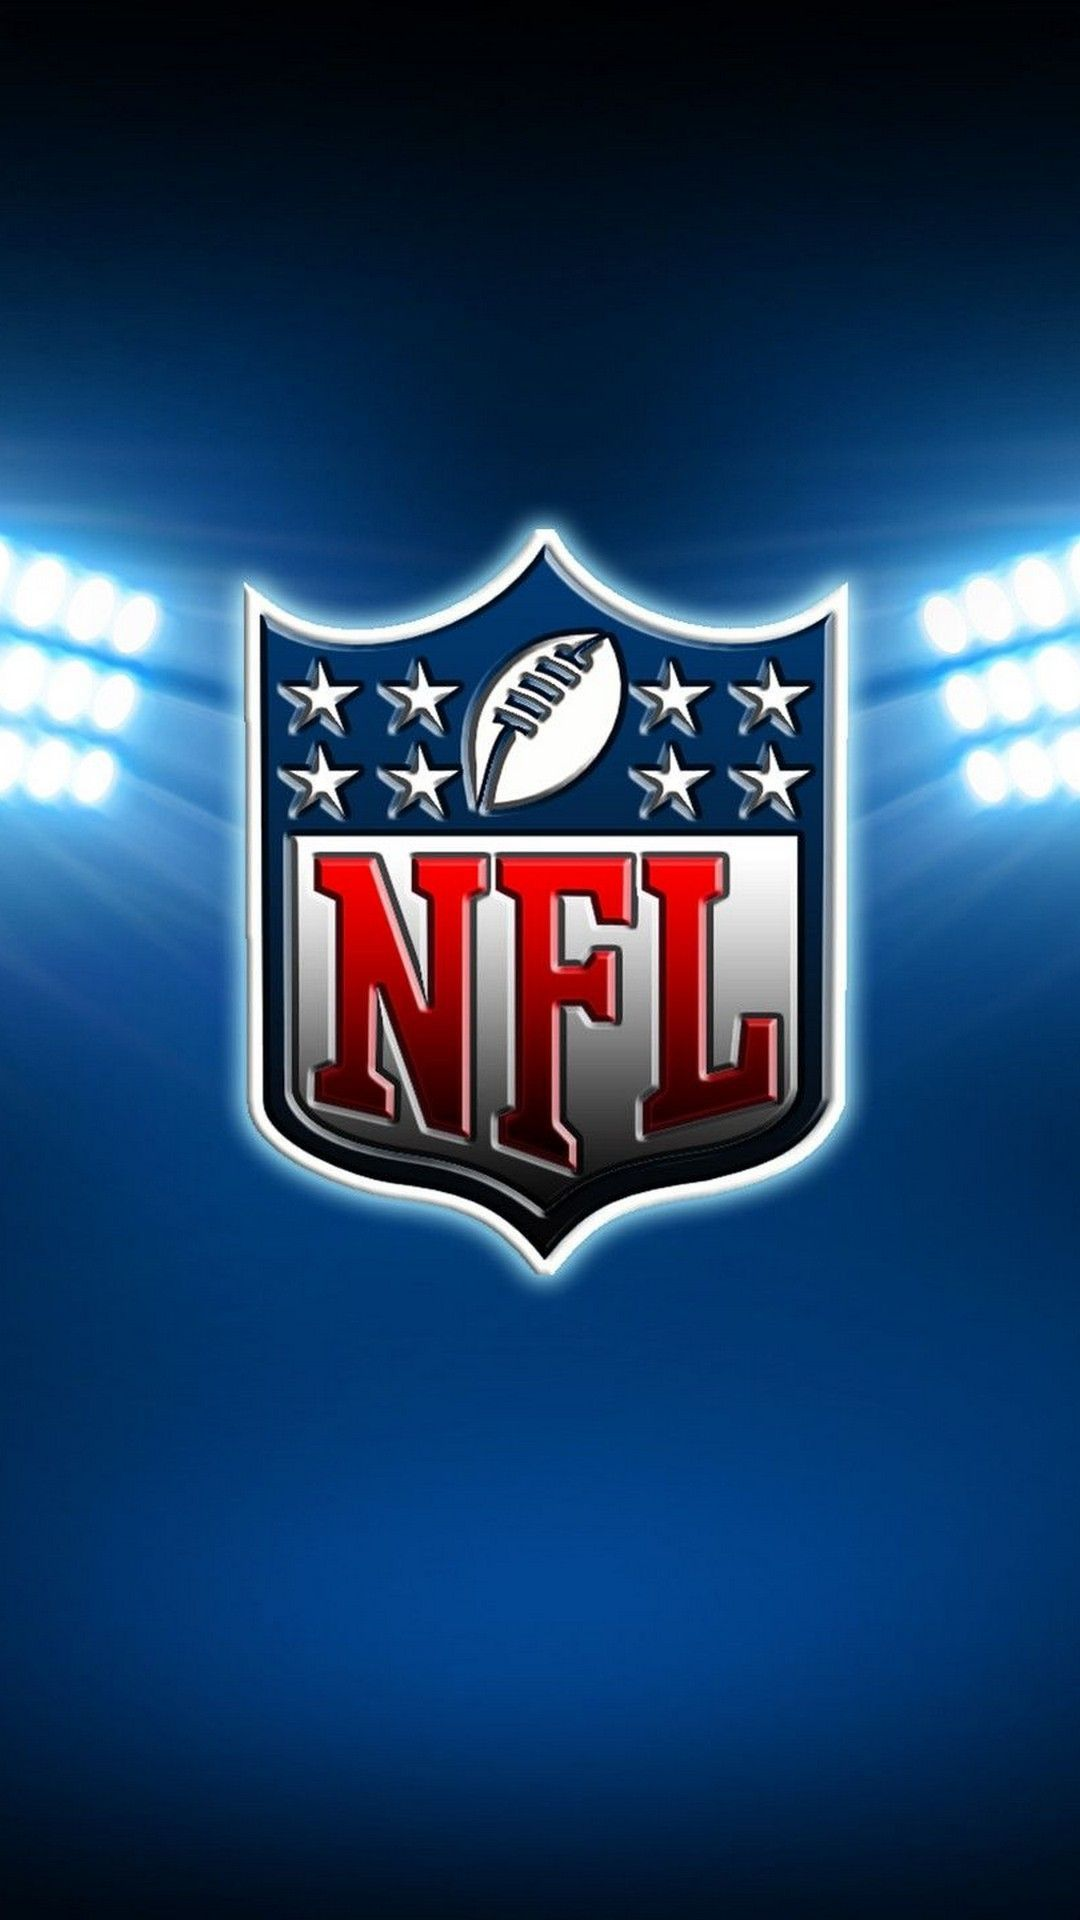 Nfl Sick Football Wallpaper Home Screen In 2020 Football Wallpaper Nfl Football Wallpaper Alabama Wallpaper